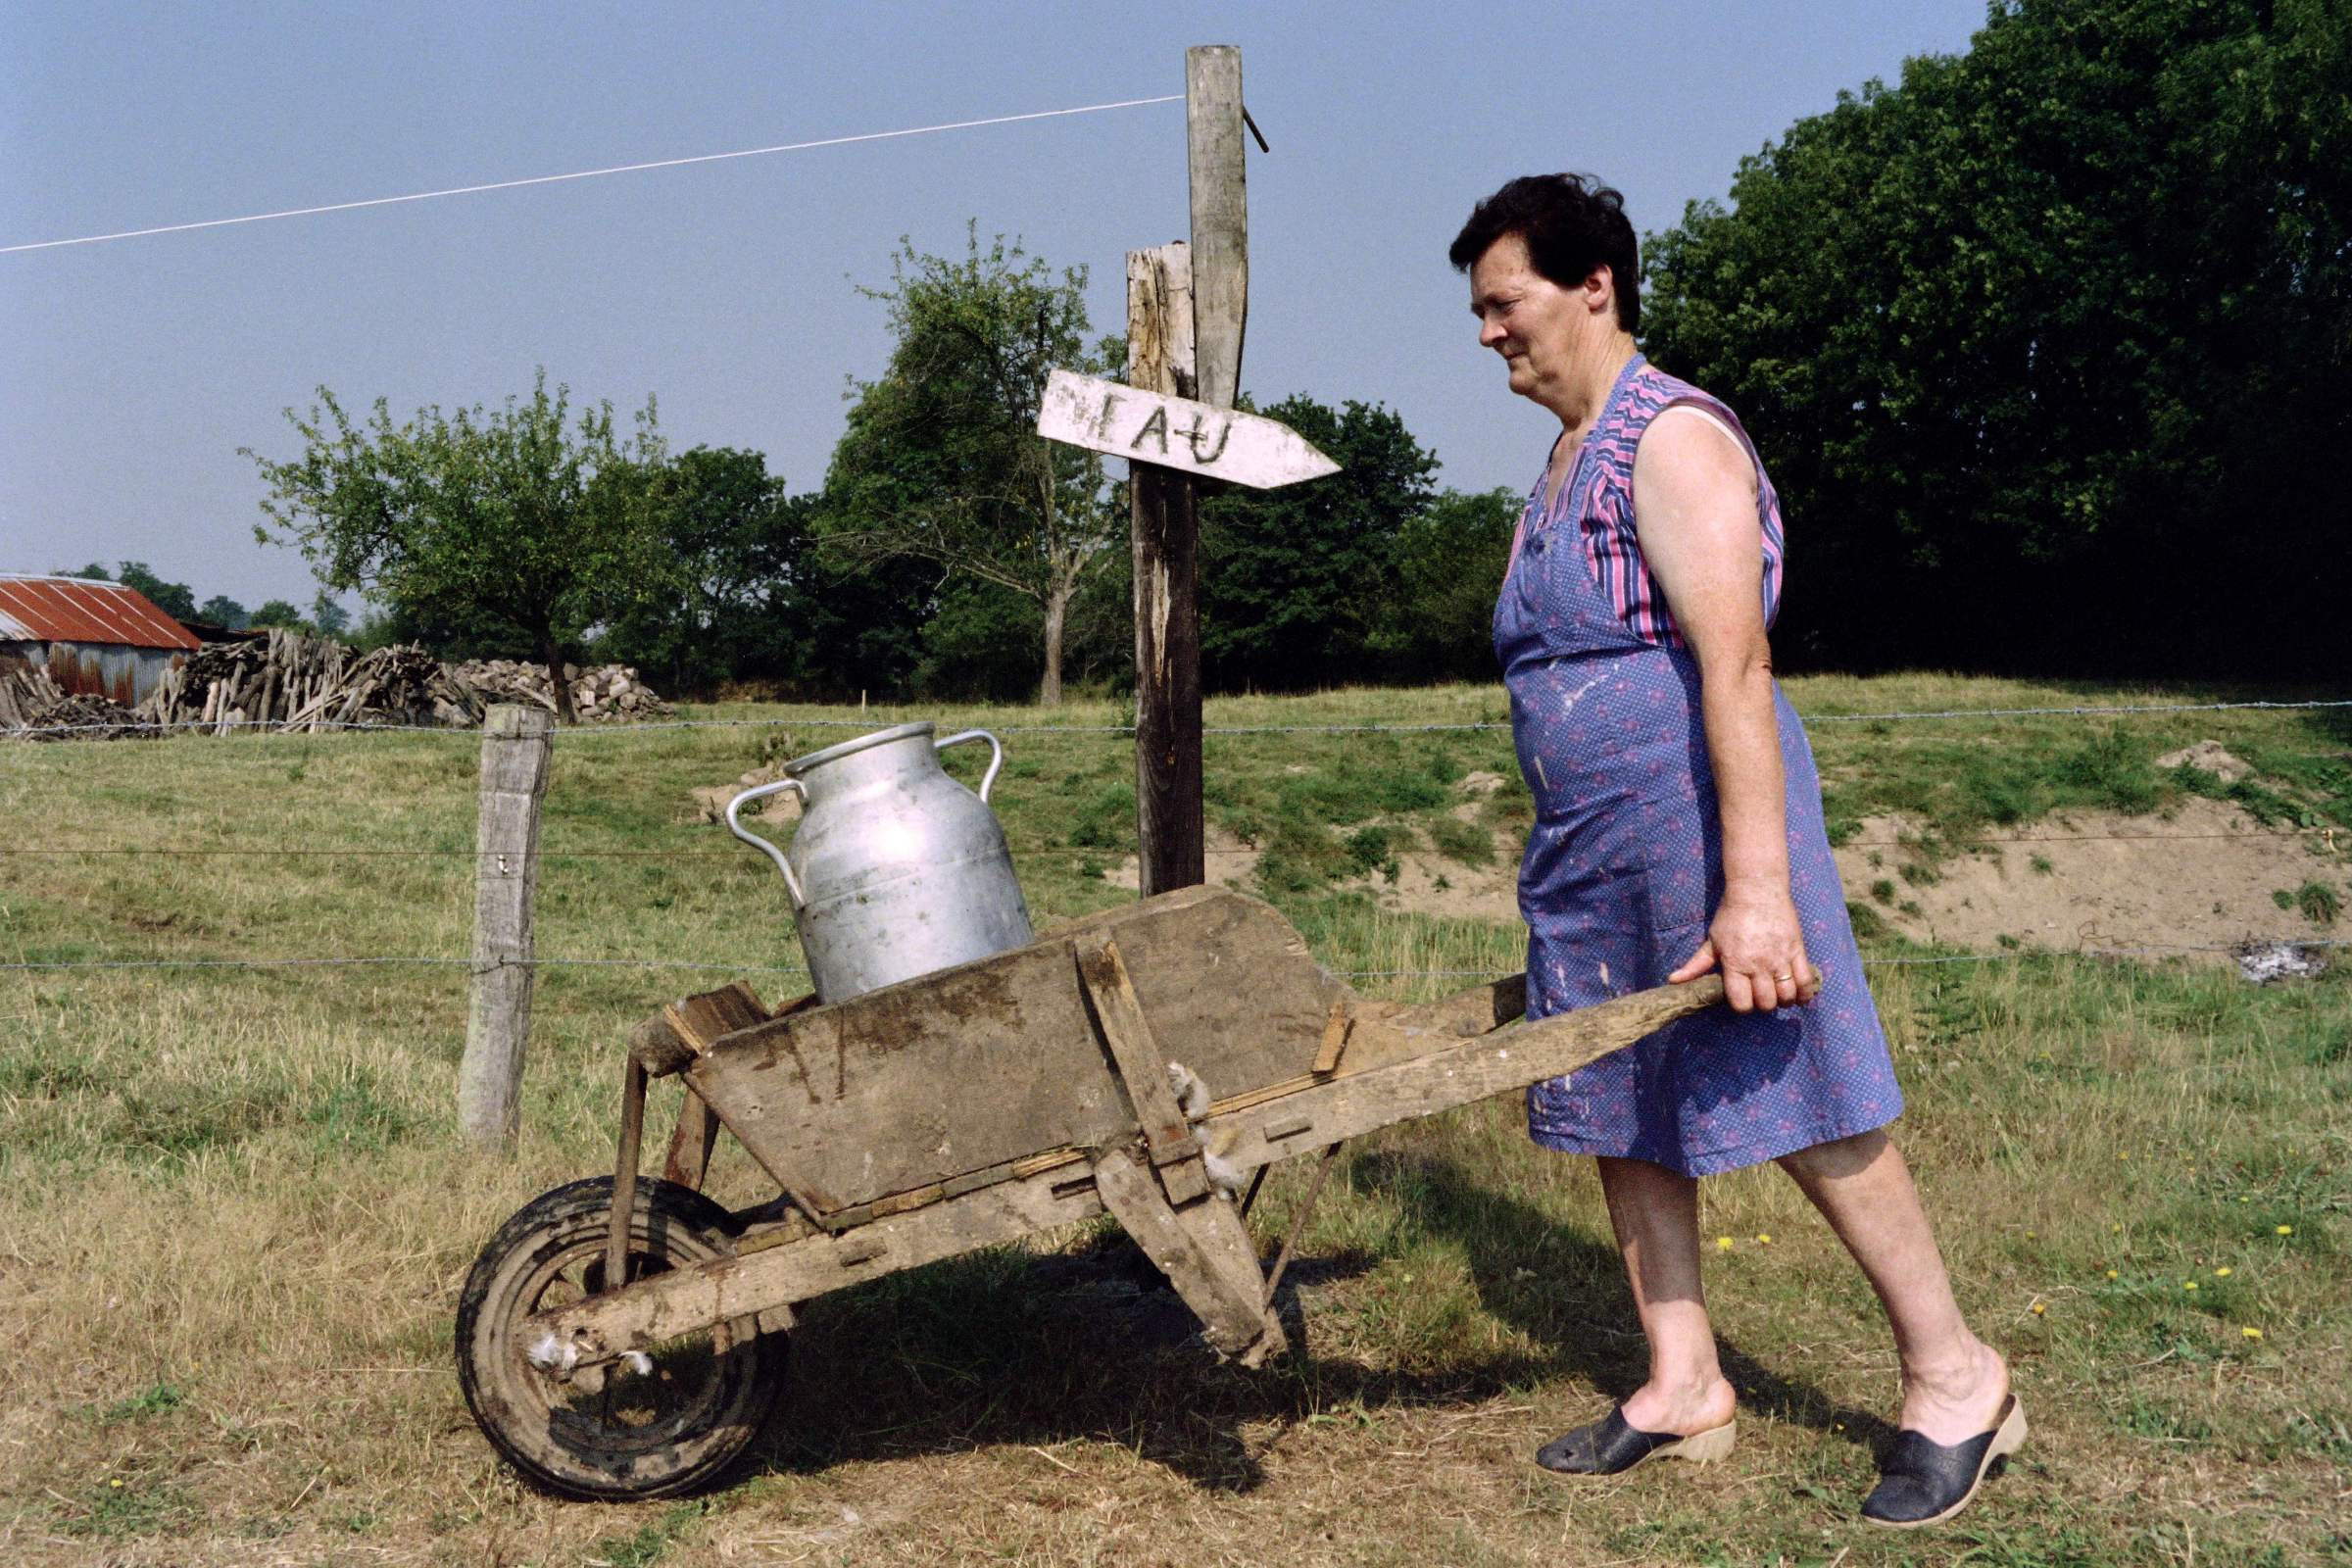 Coming back from collect water, a woman, deprived of drinking water in her house, pushes a wheelbarrow containing a large pitcher of water on August 03, 1990 in Saint-Martin-des-Besaces, France.